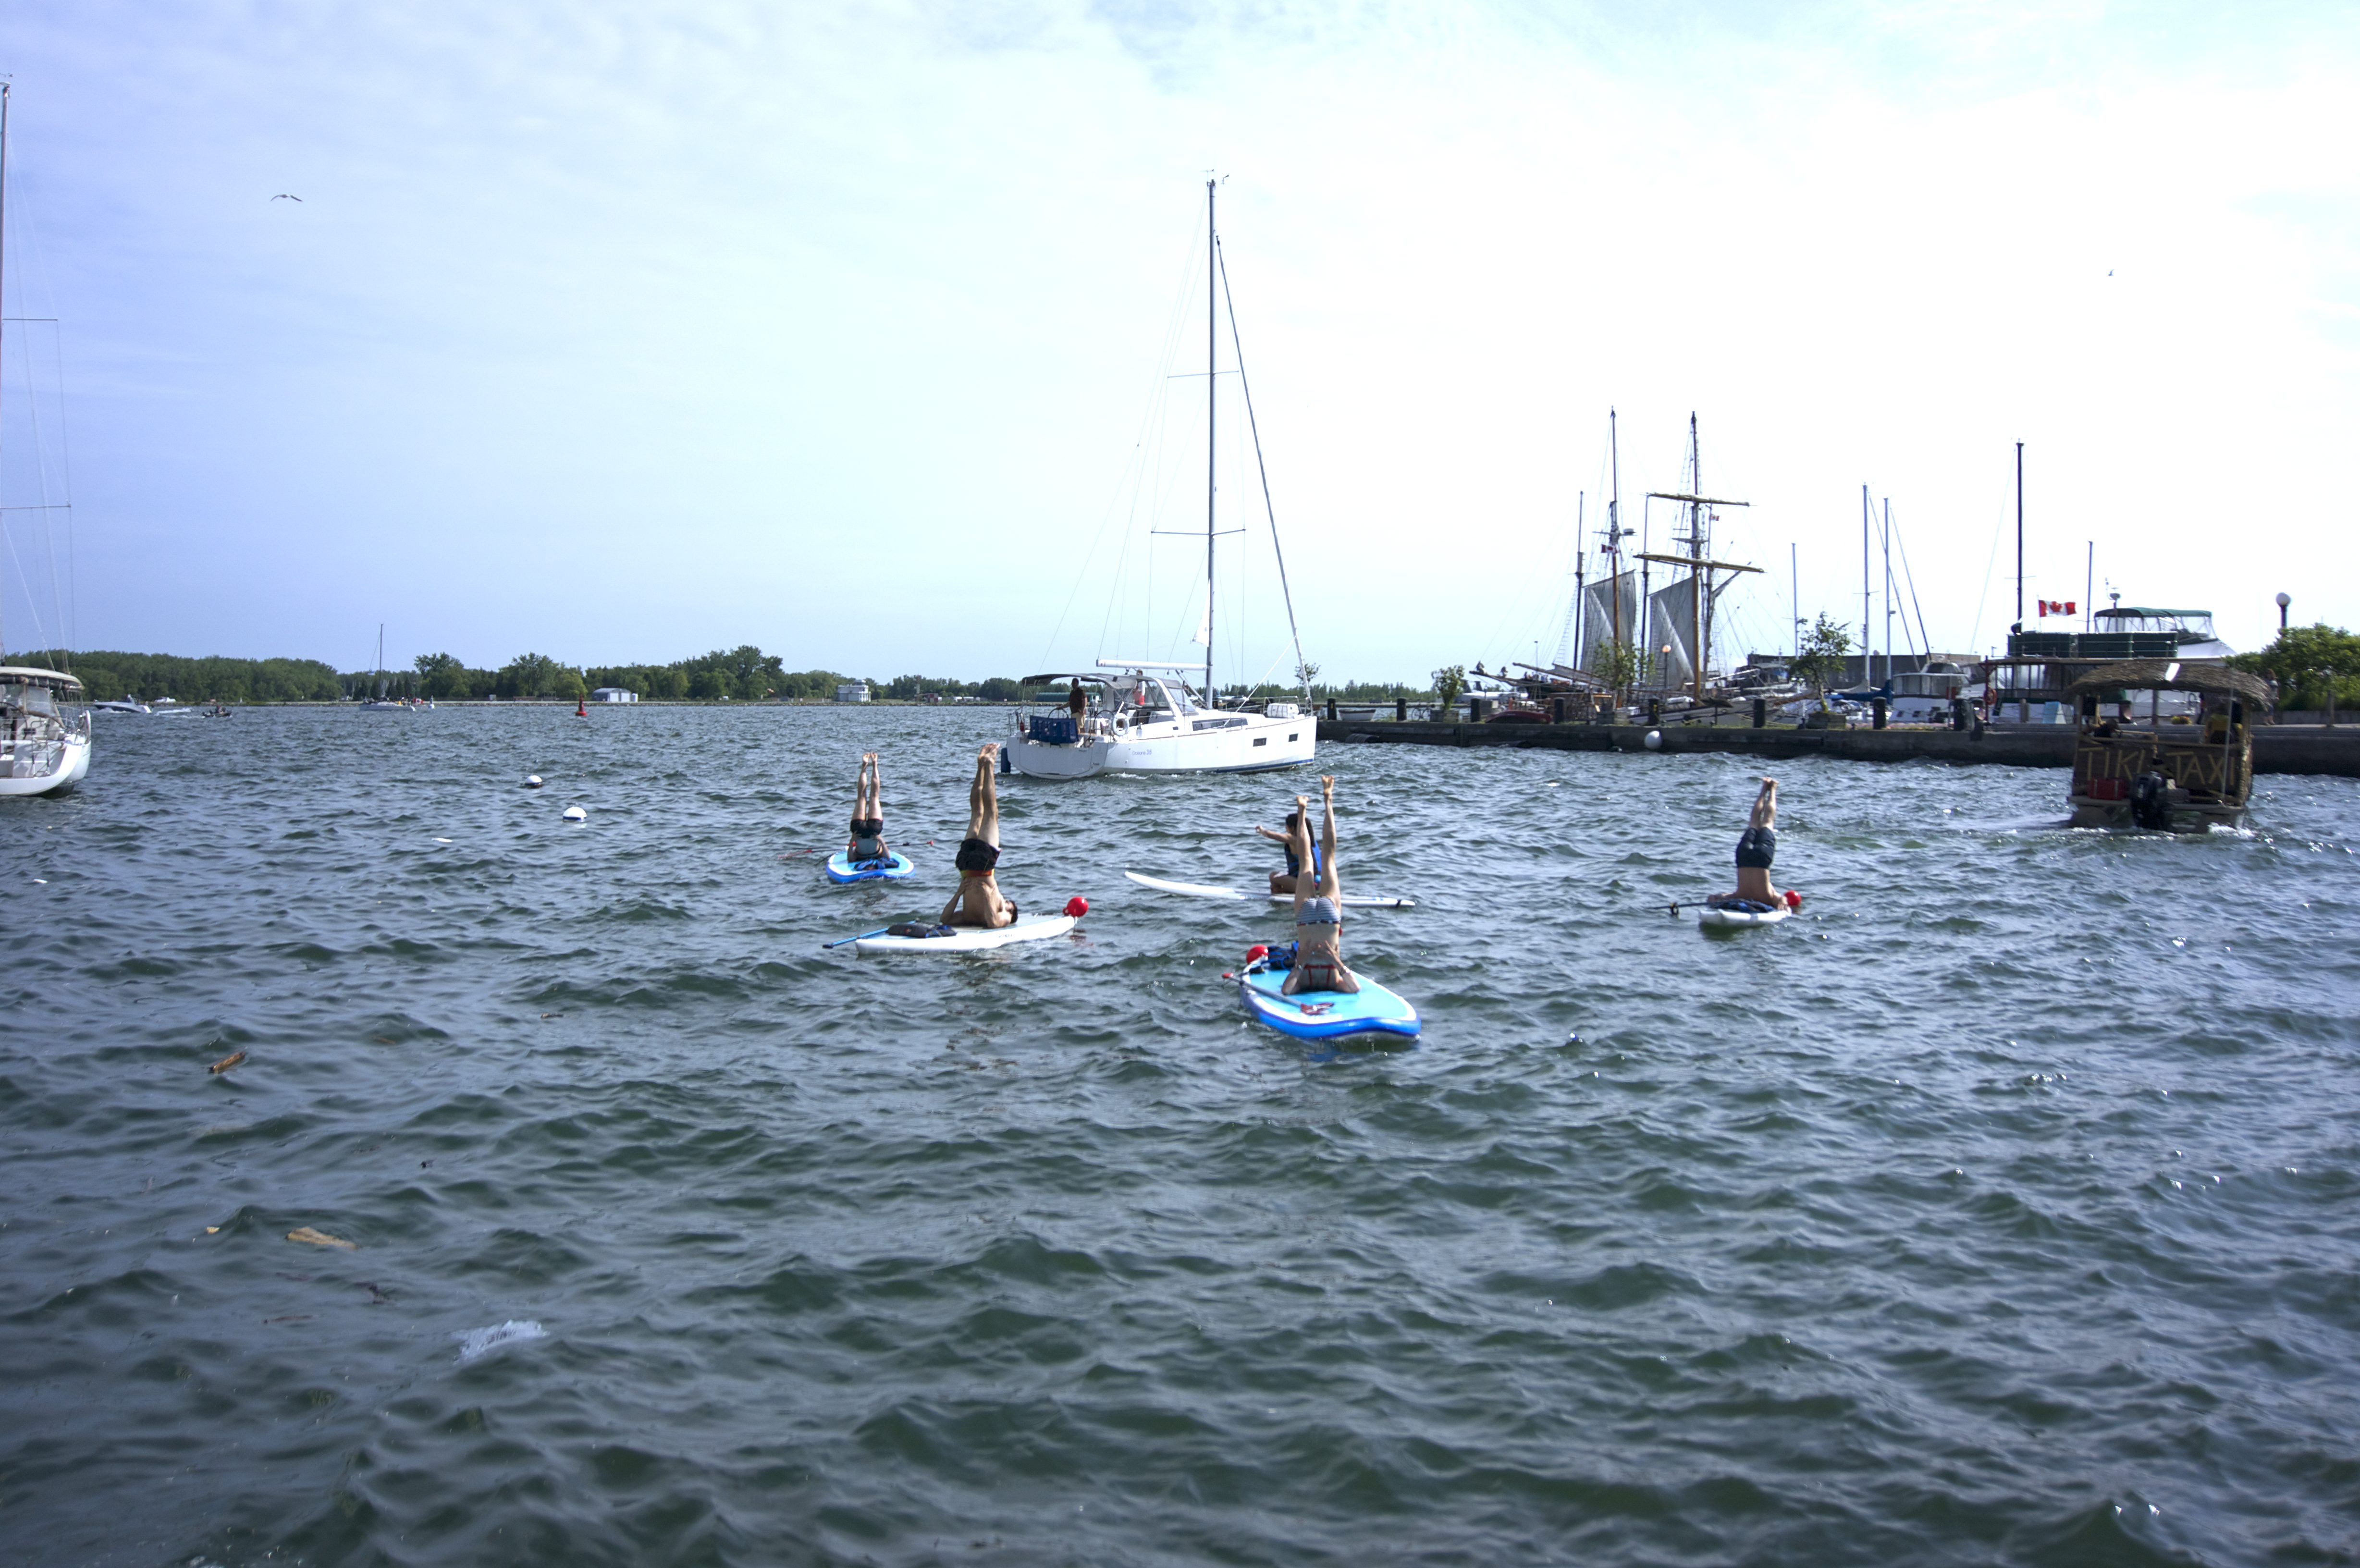 SUP Yoga secondary contact recreational water activity